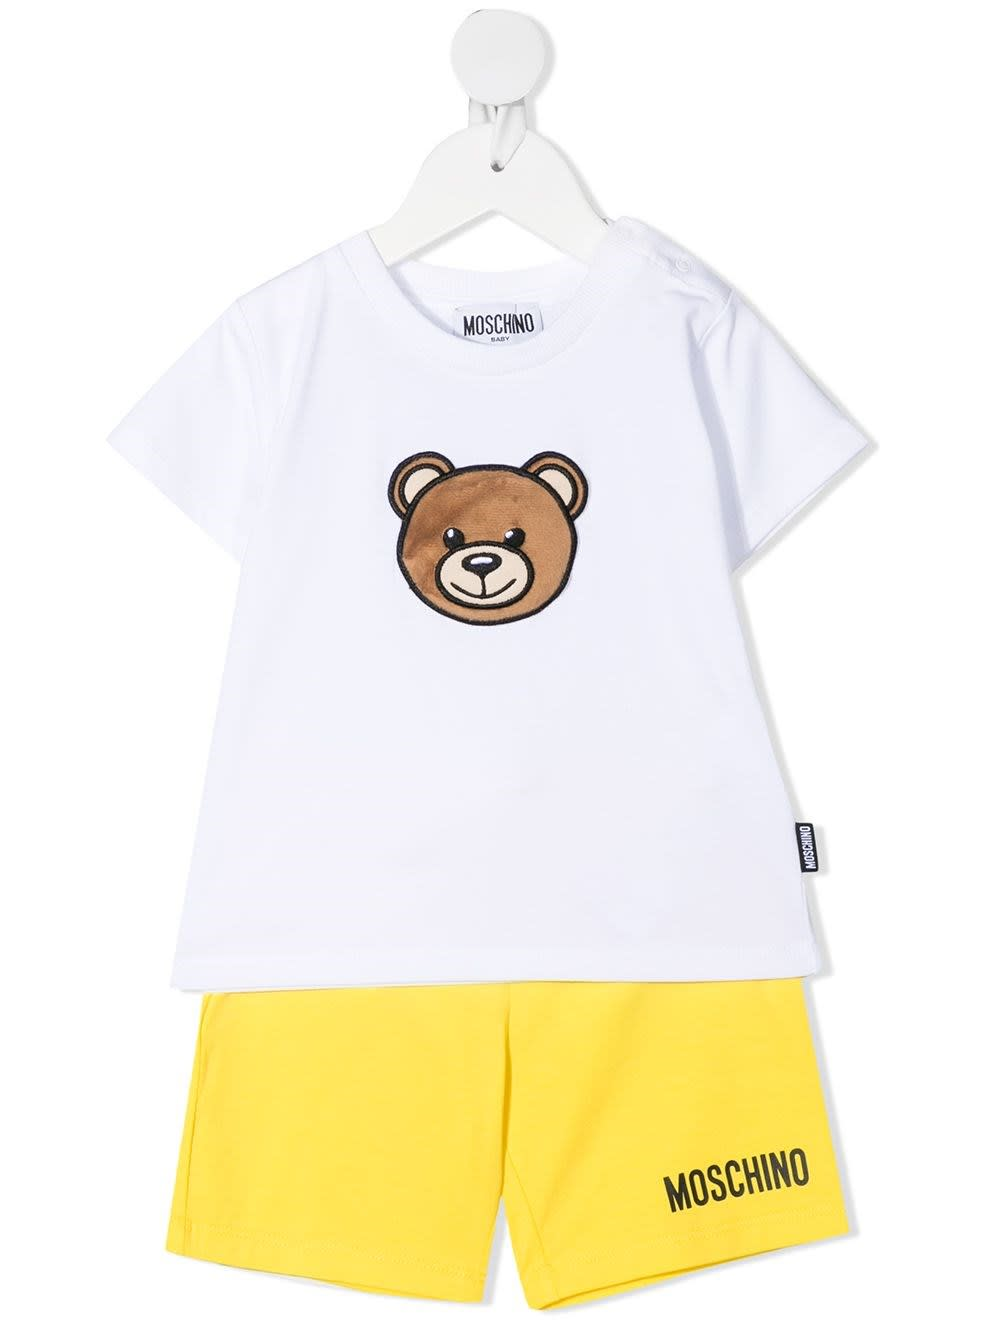 Moschino Cottons BEAR SHORTS T-SHIRT AND SHORTS SUIT